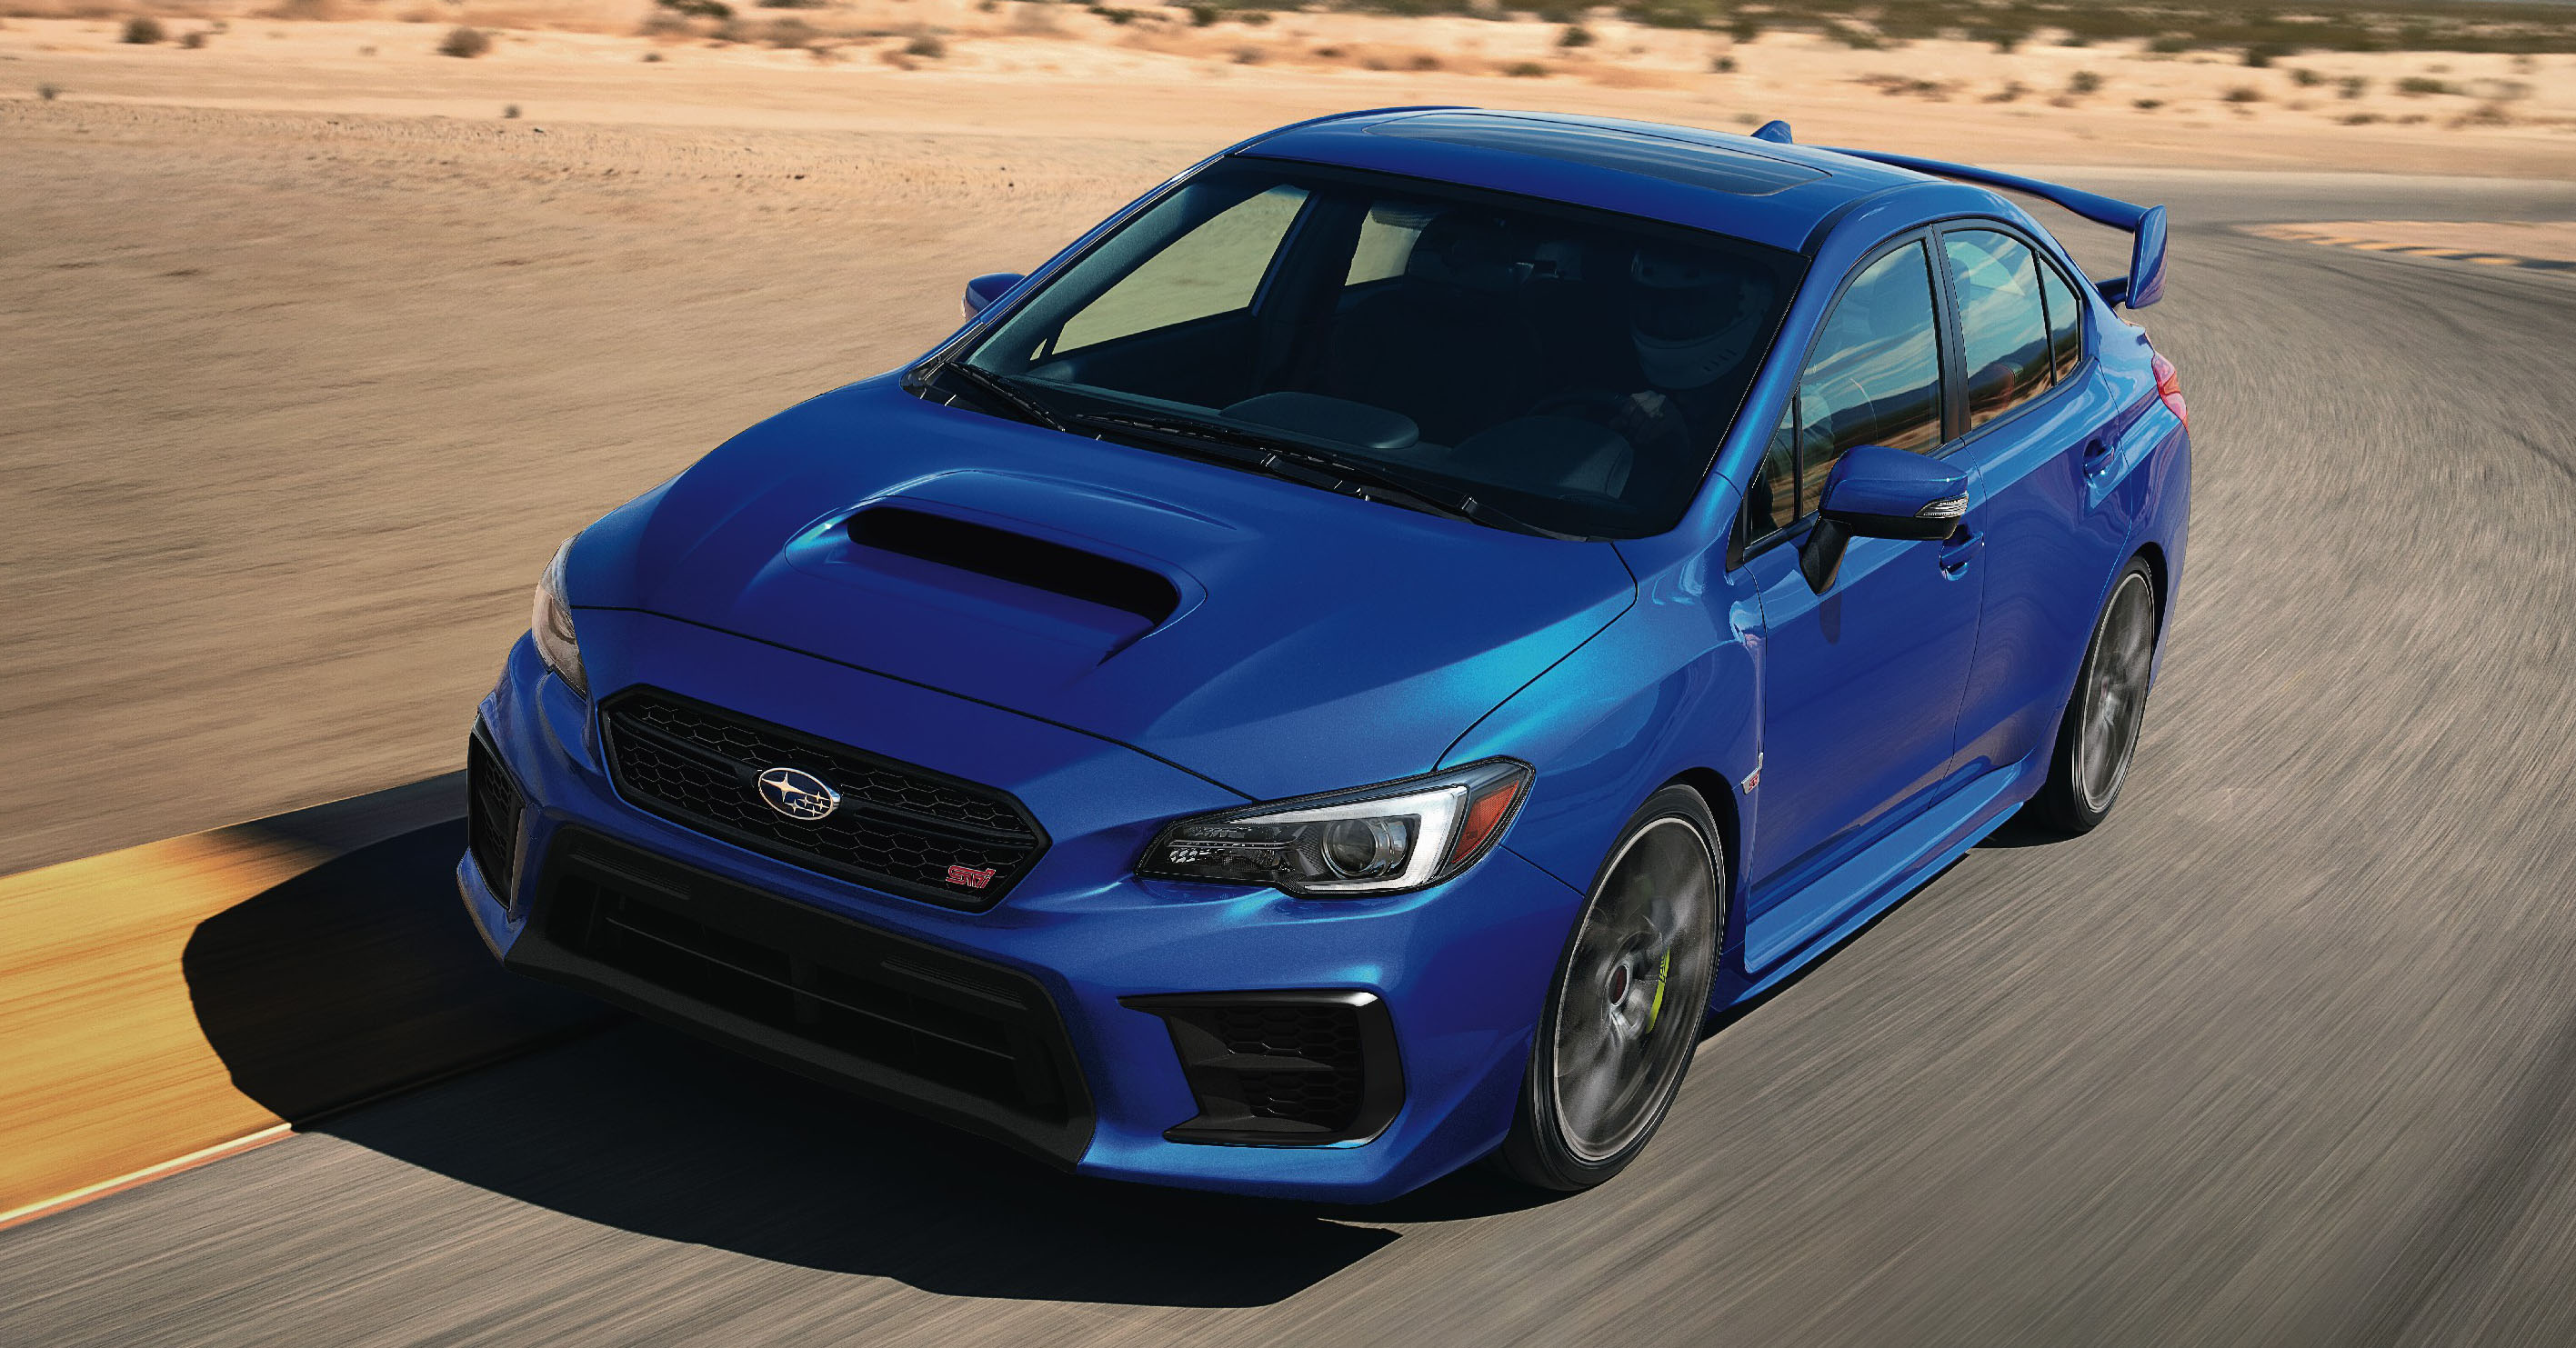 2020 Subaru BRZ tS returns to the US - only 300 units 2020 ...